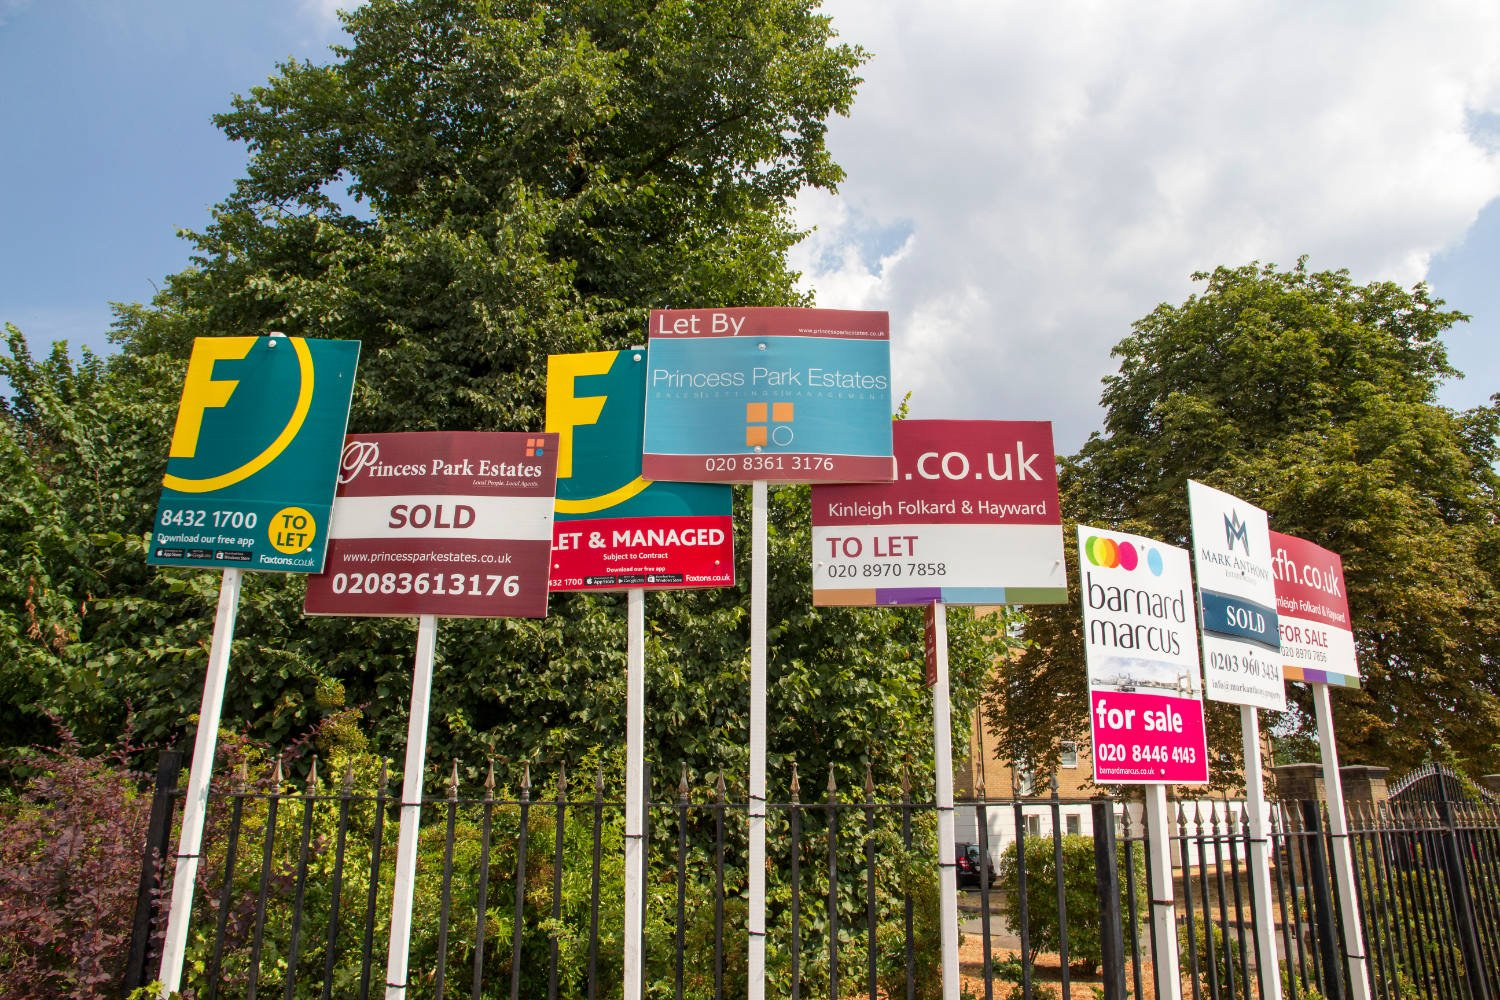 2021 Predictions for the U.K. Housing Market